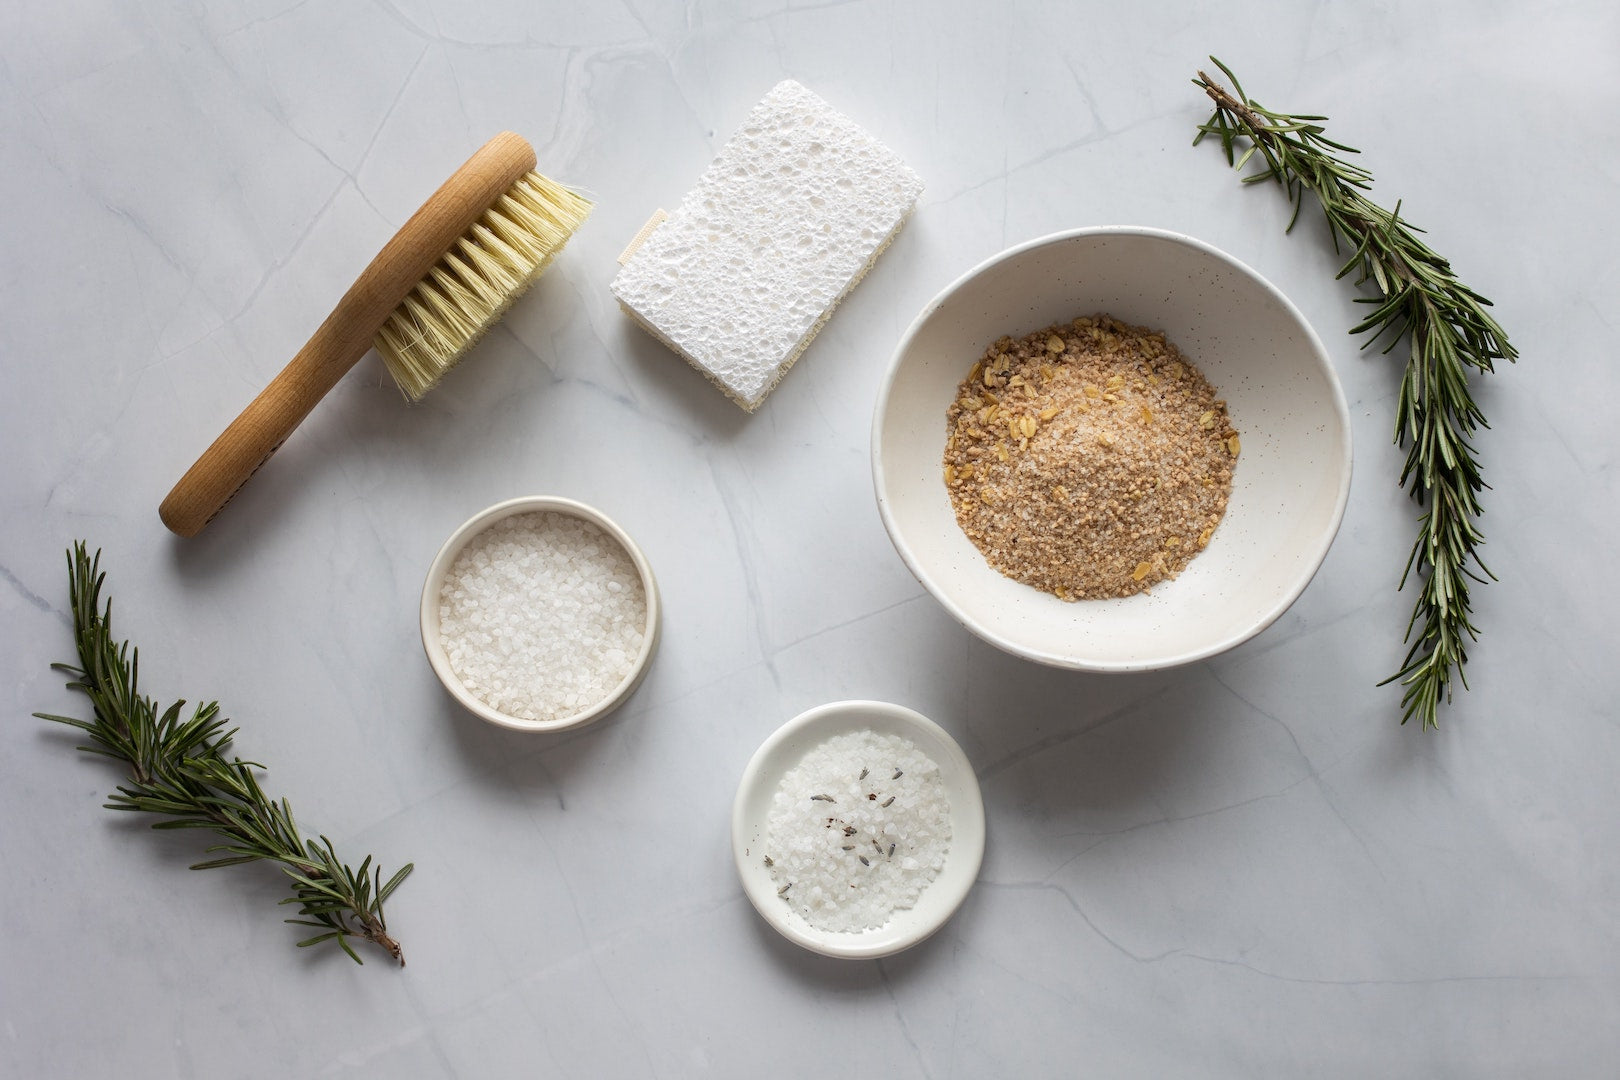 Image of oatmeal used in LĒVO's diy coconut oil face mask recipe.